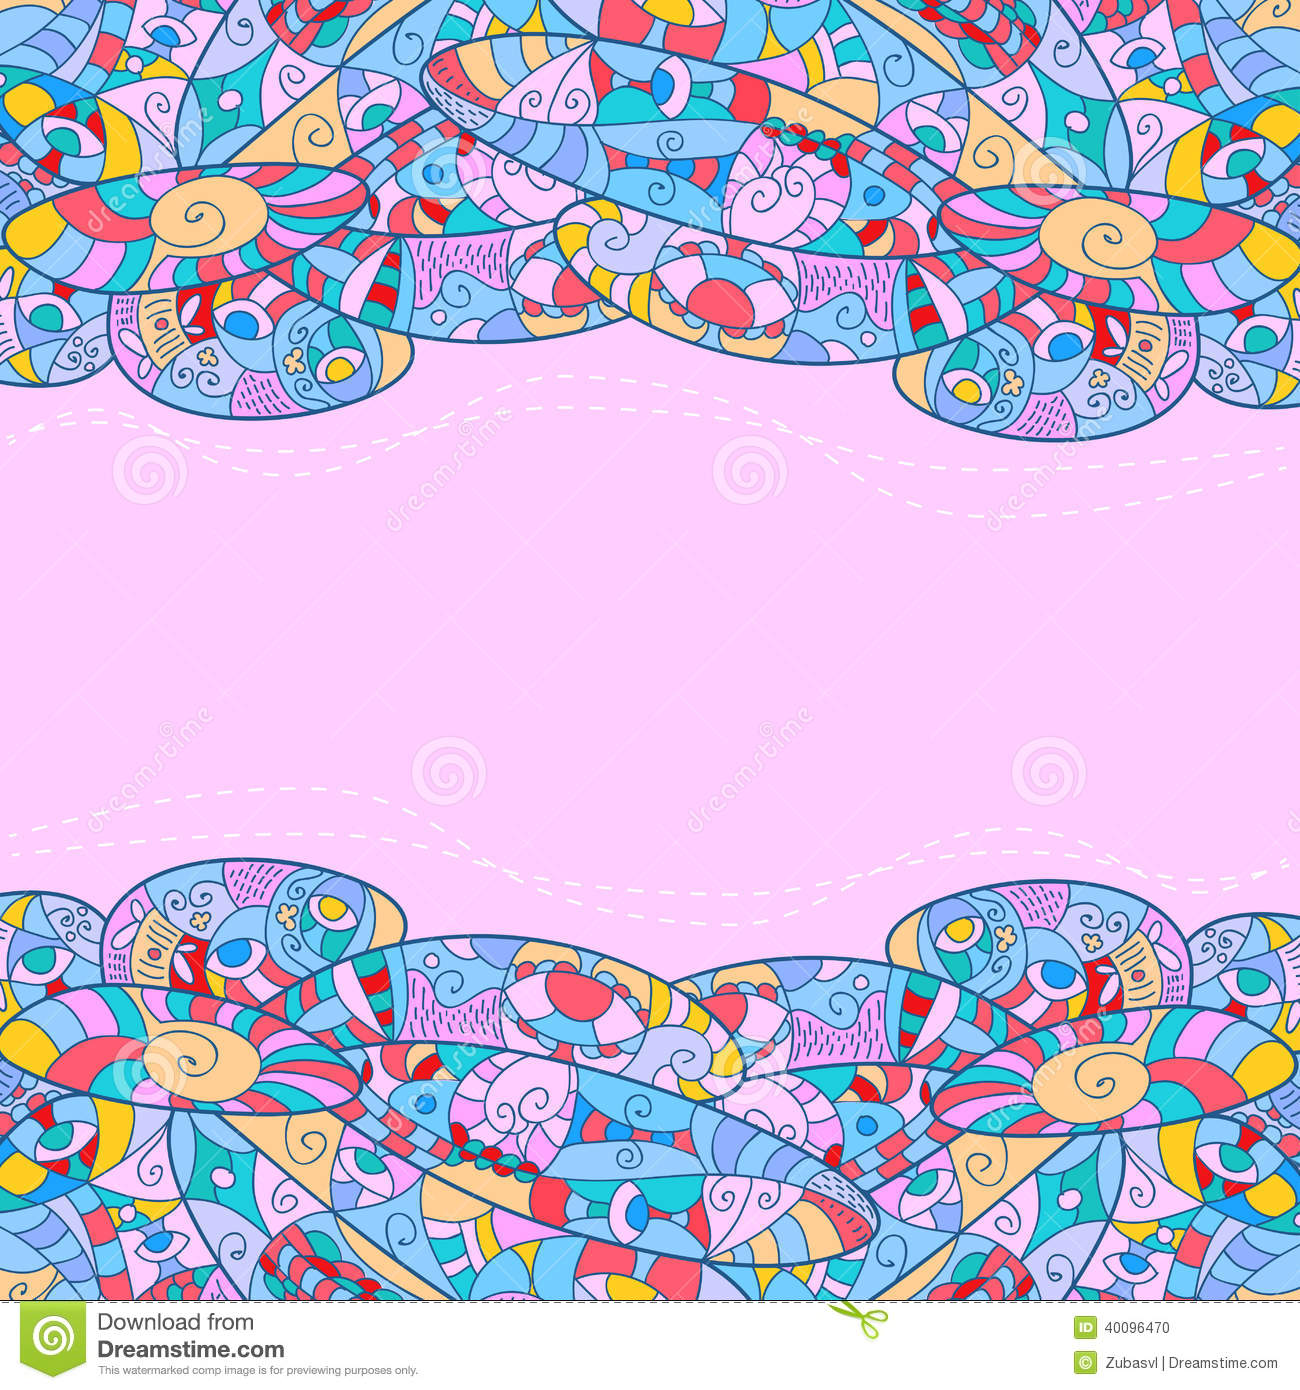 Book Cover Patterns Photo : Childish frame with abstract patterns pink stock vector